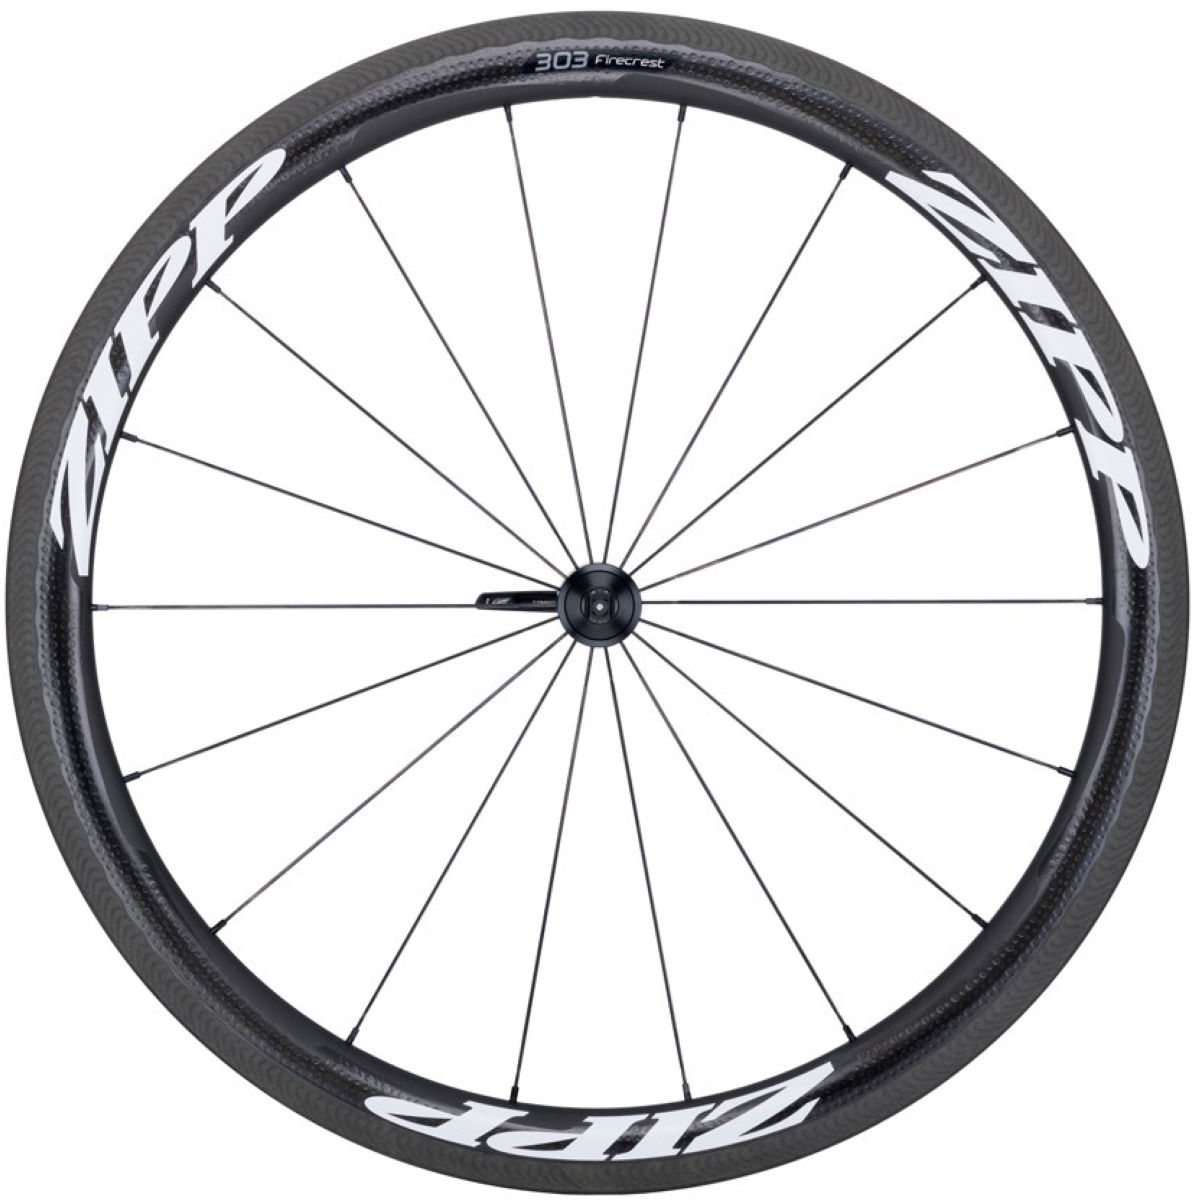 Zipp 303 Carbon Tubular Front Wheel (QR)   Performance Wheels